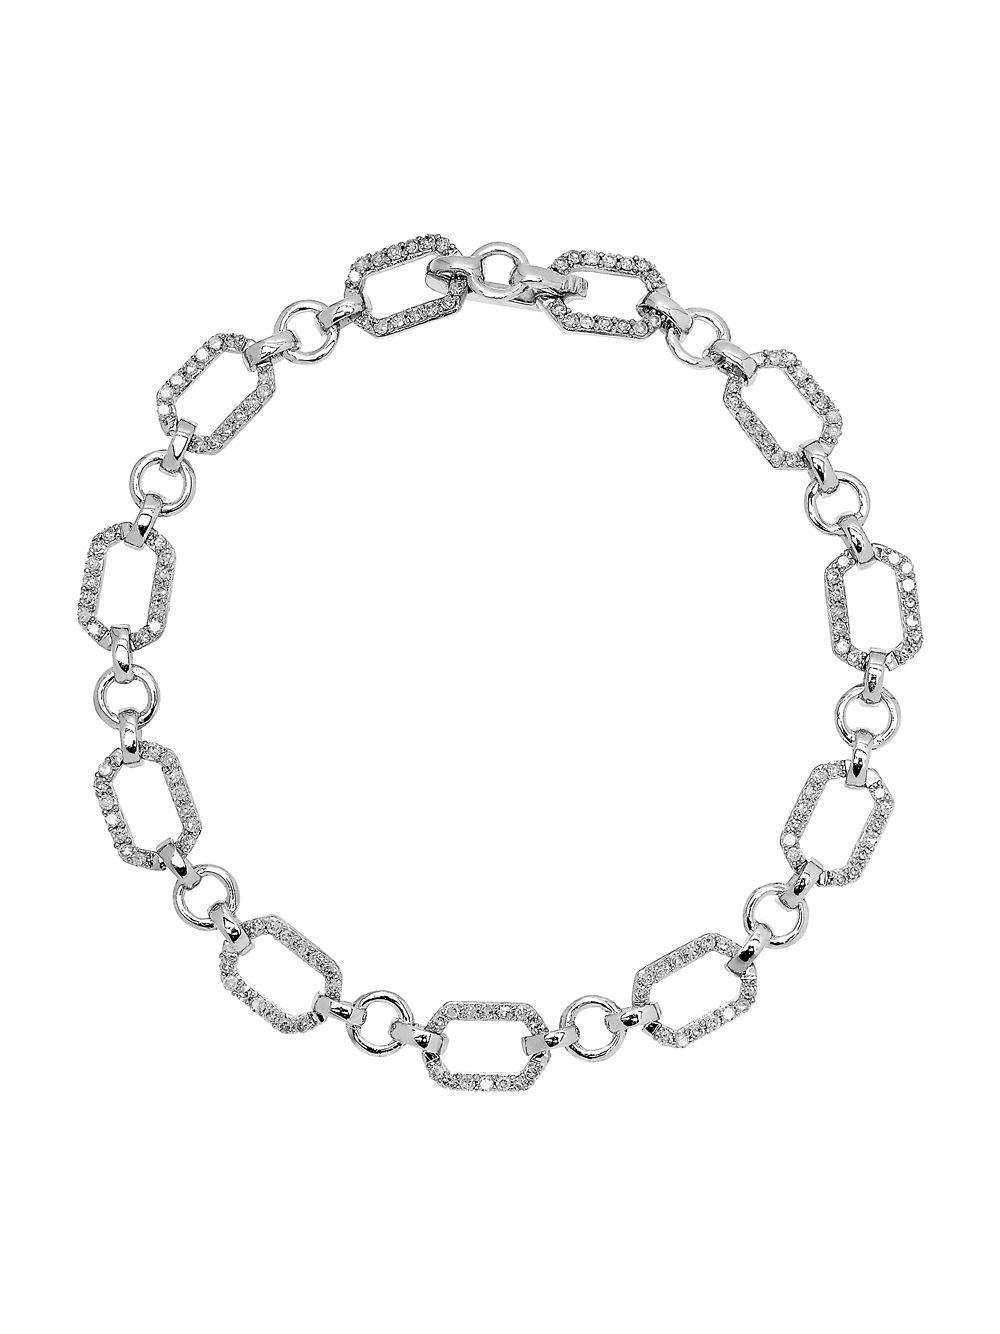 Lord Taylor Women S Metallic Diamond And 14k White Gold Linked Bracelet